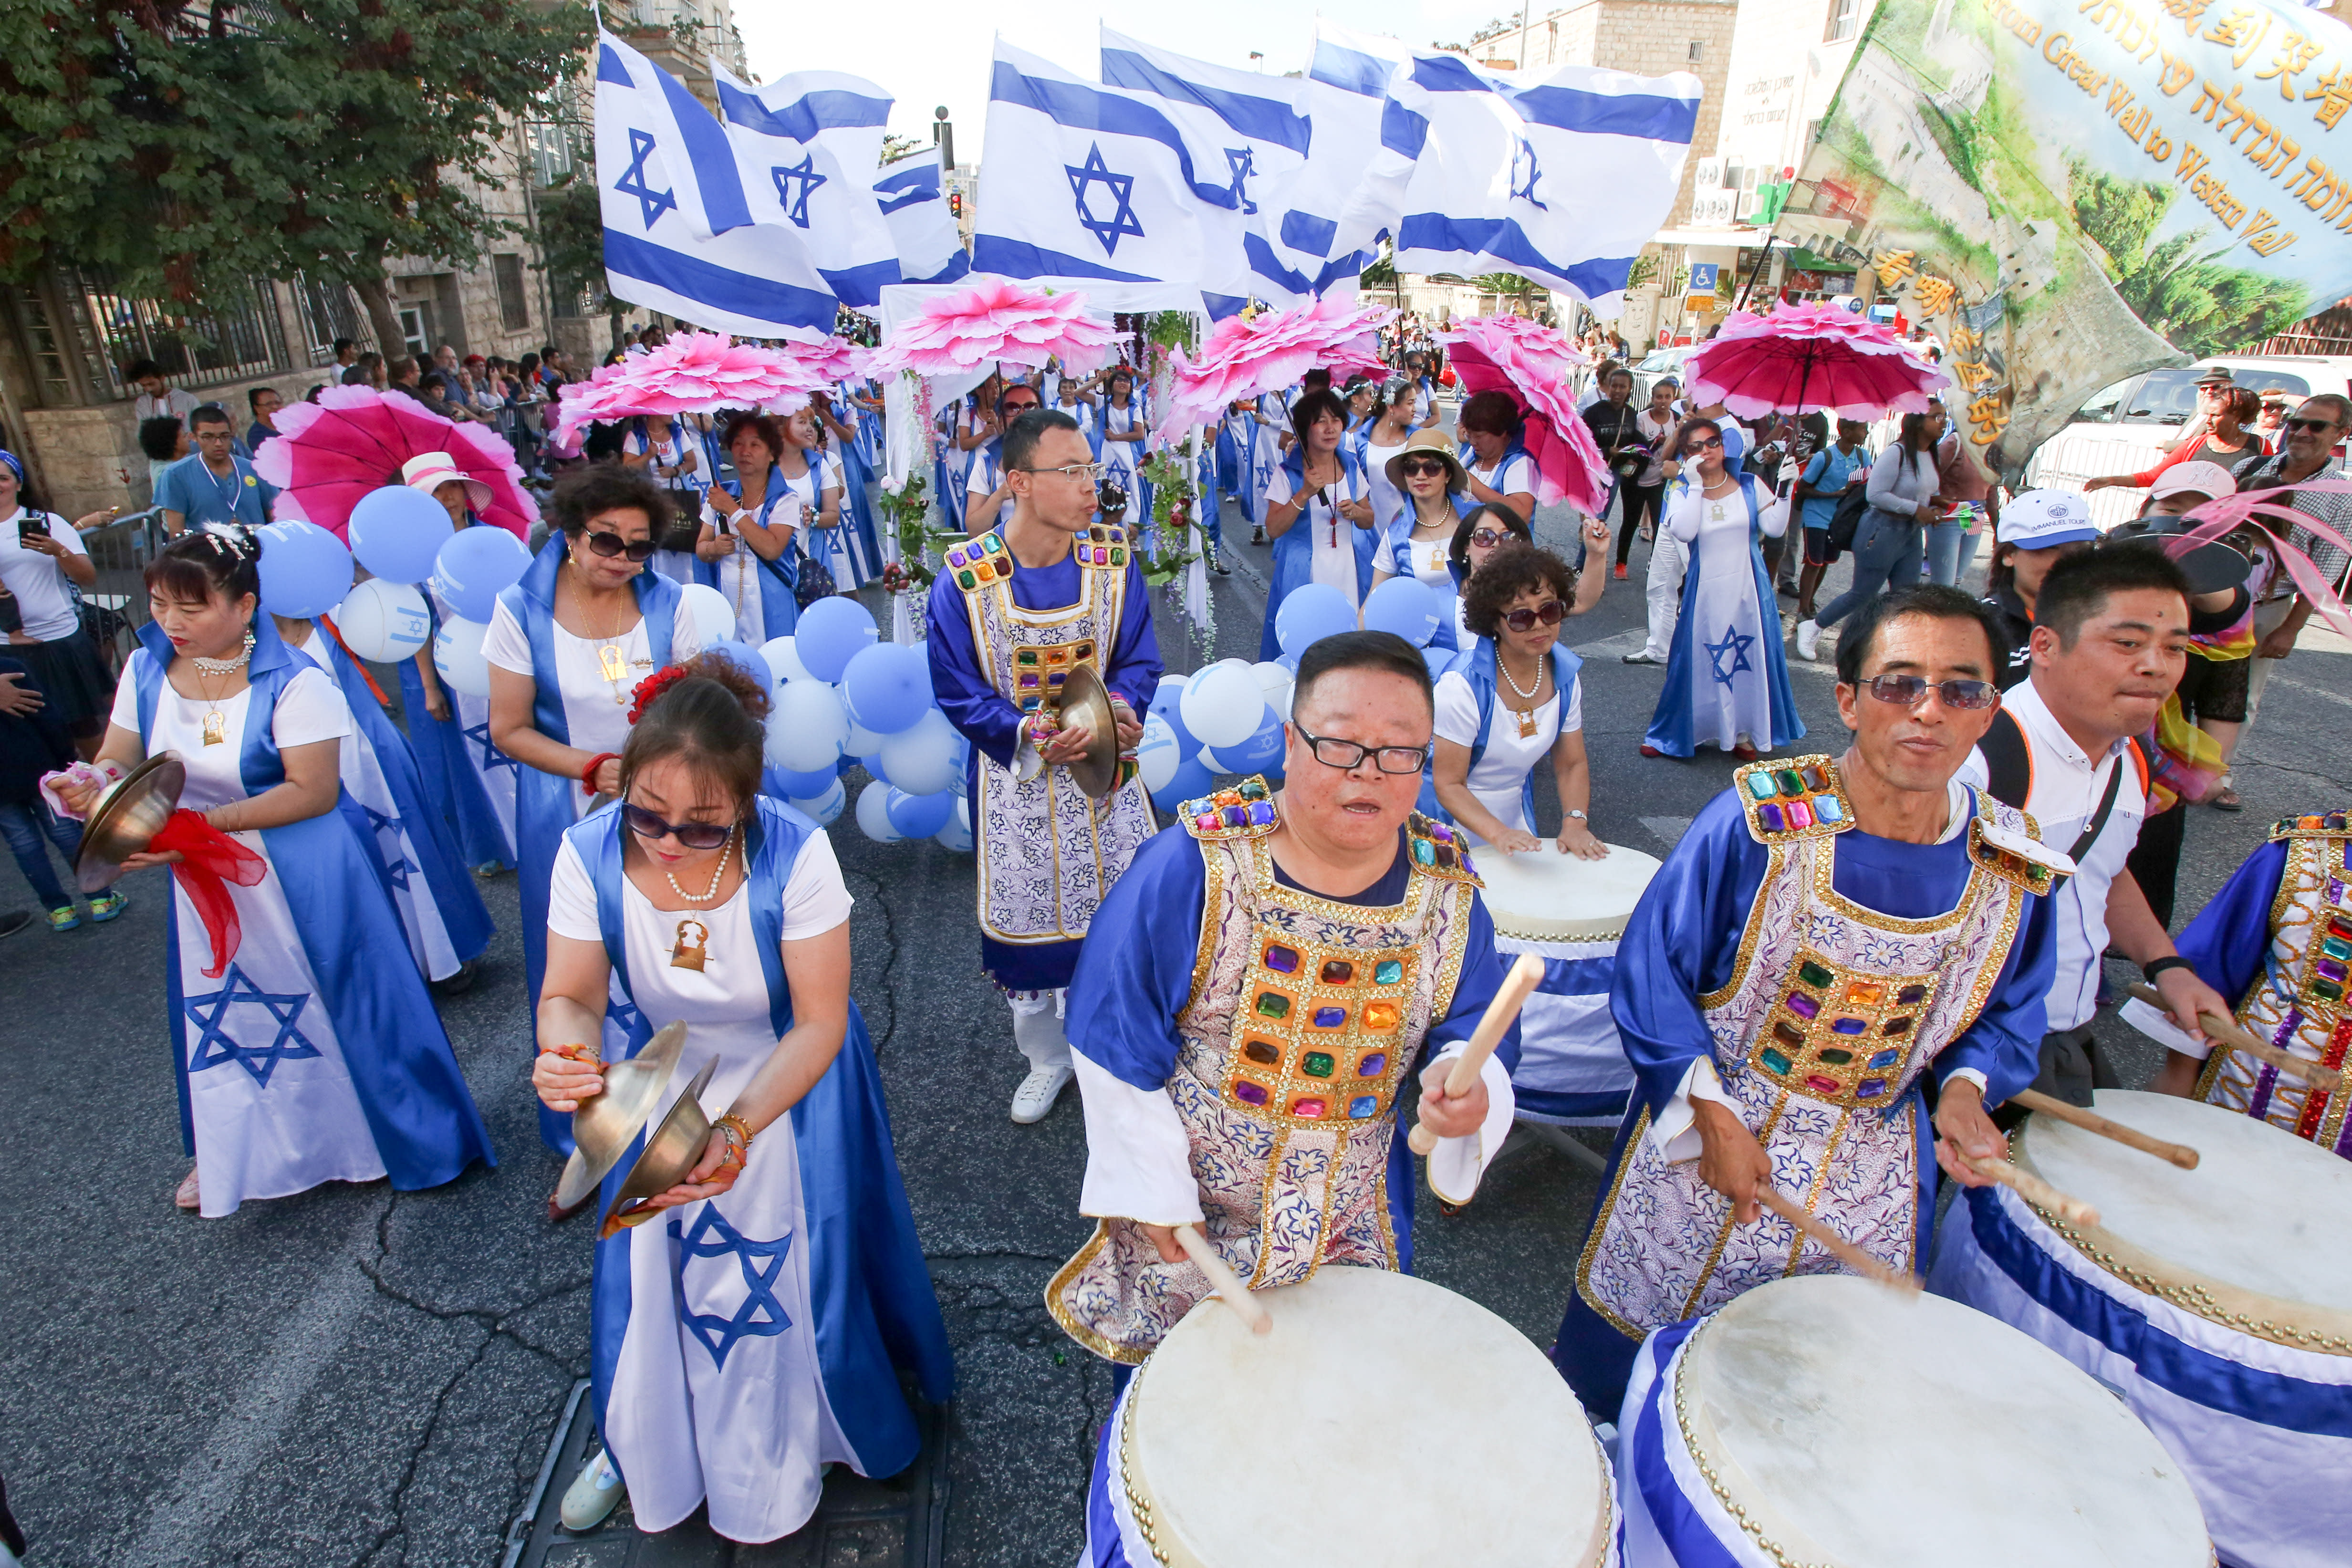 Celebrants at the annual Jerusalem March / MARC ISRAEL SELLEM/THE JERUSALEM POST